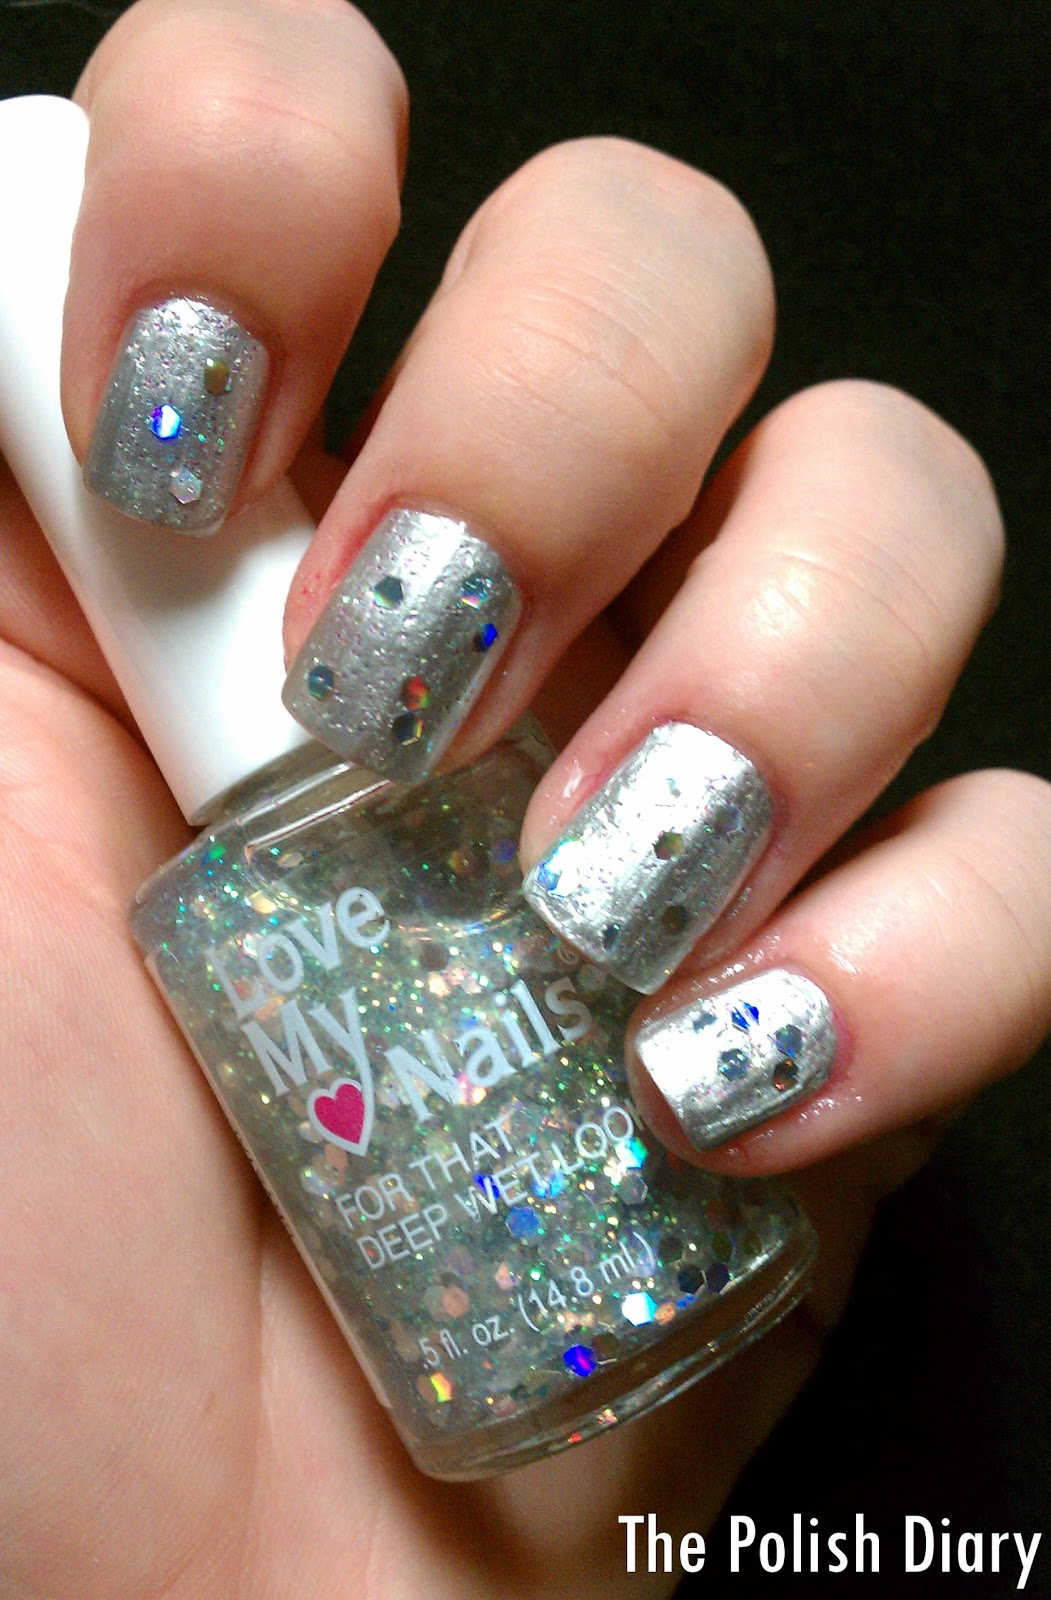 The Polish Diary: Love My Nails Glitter